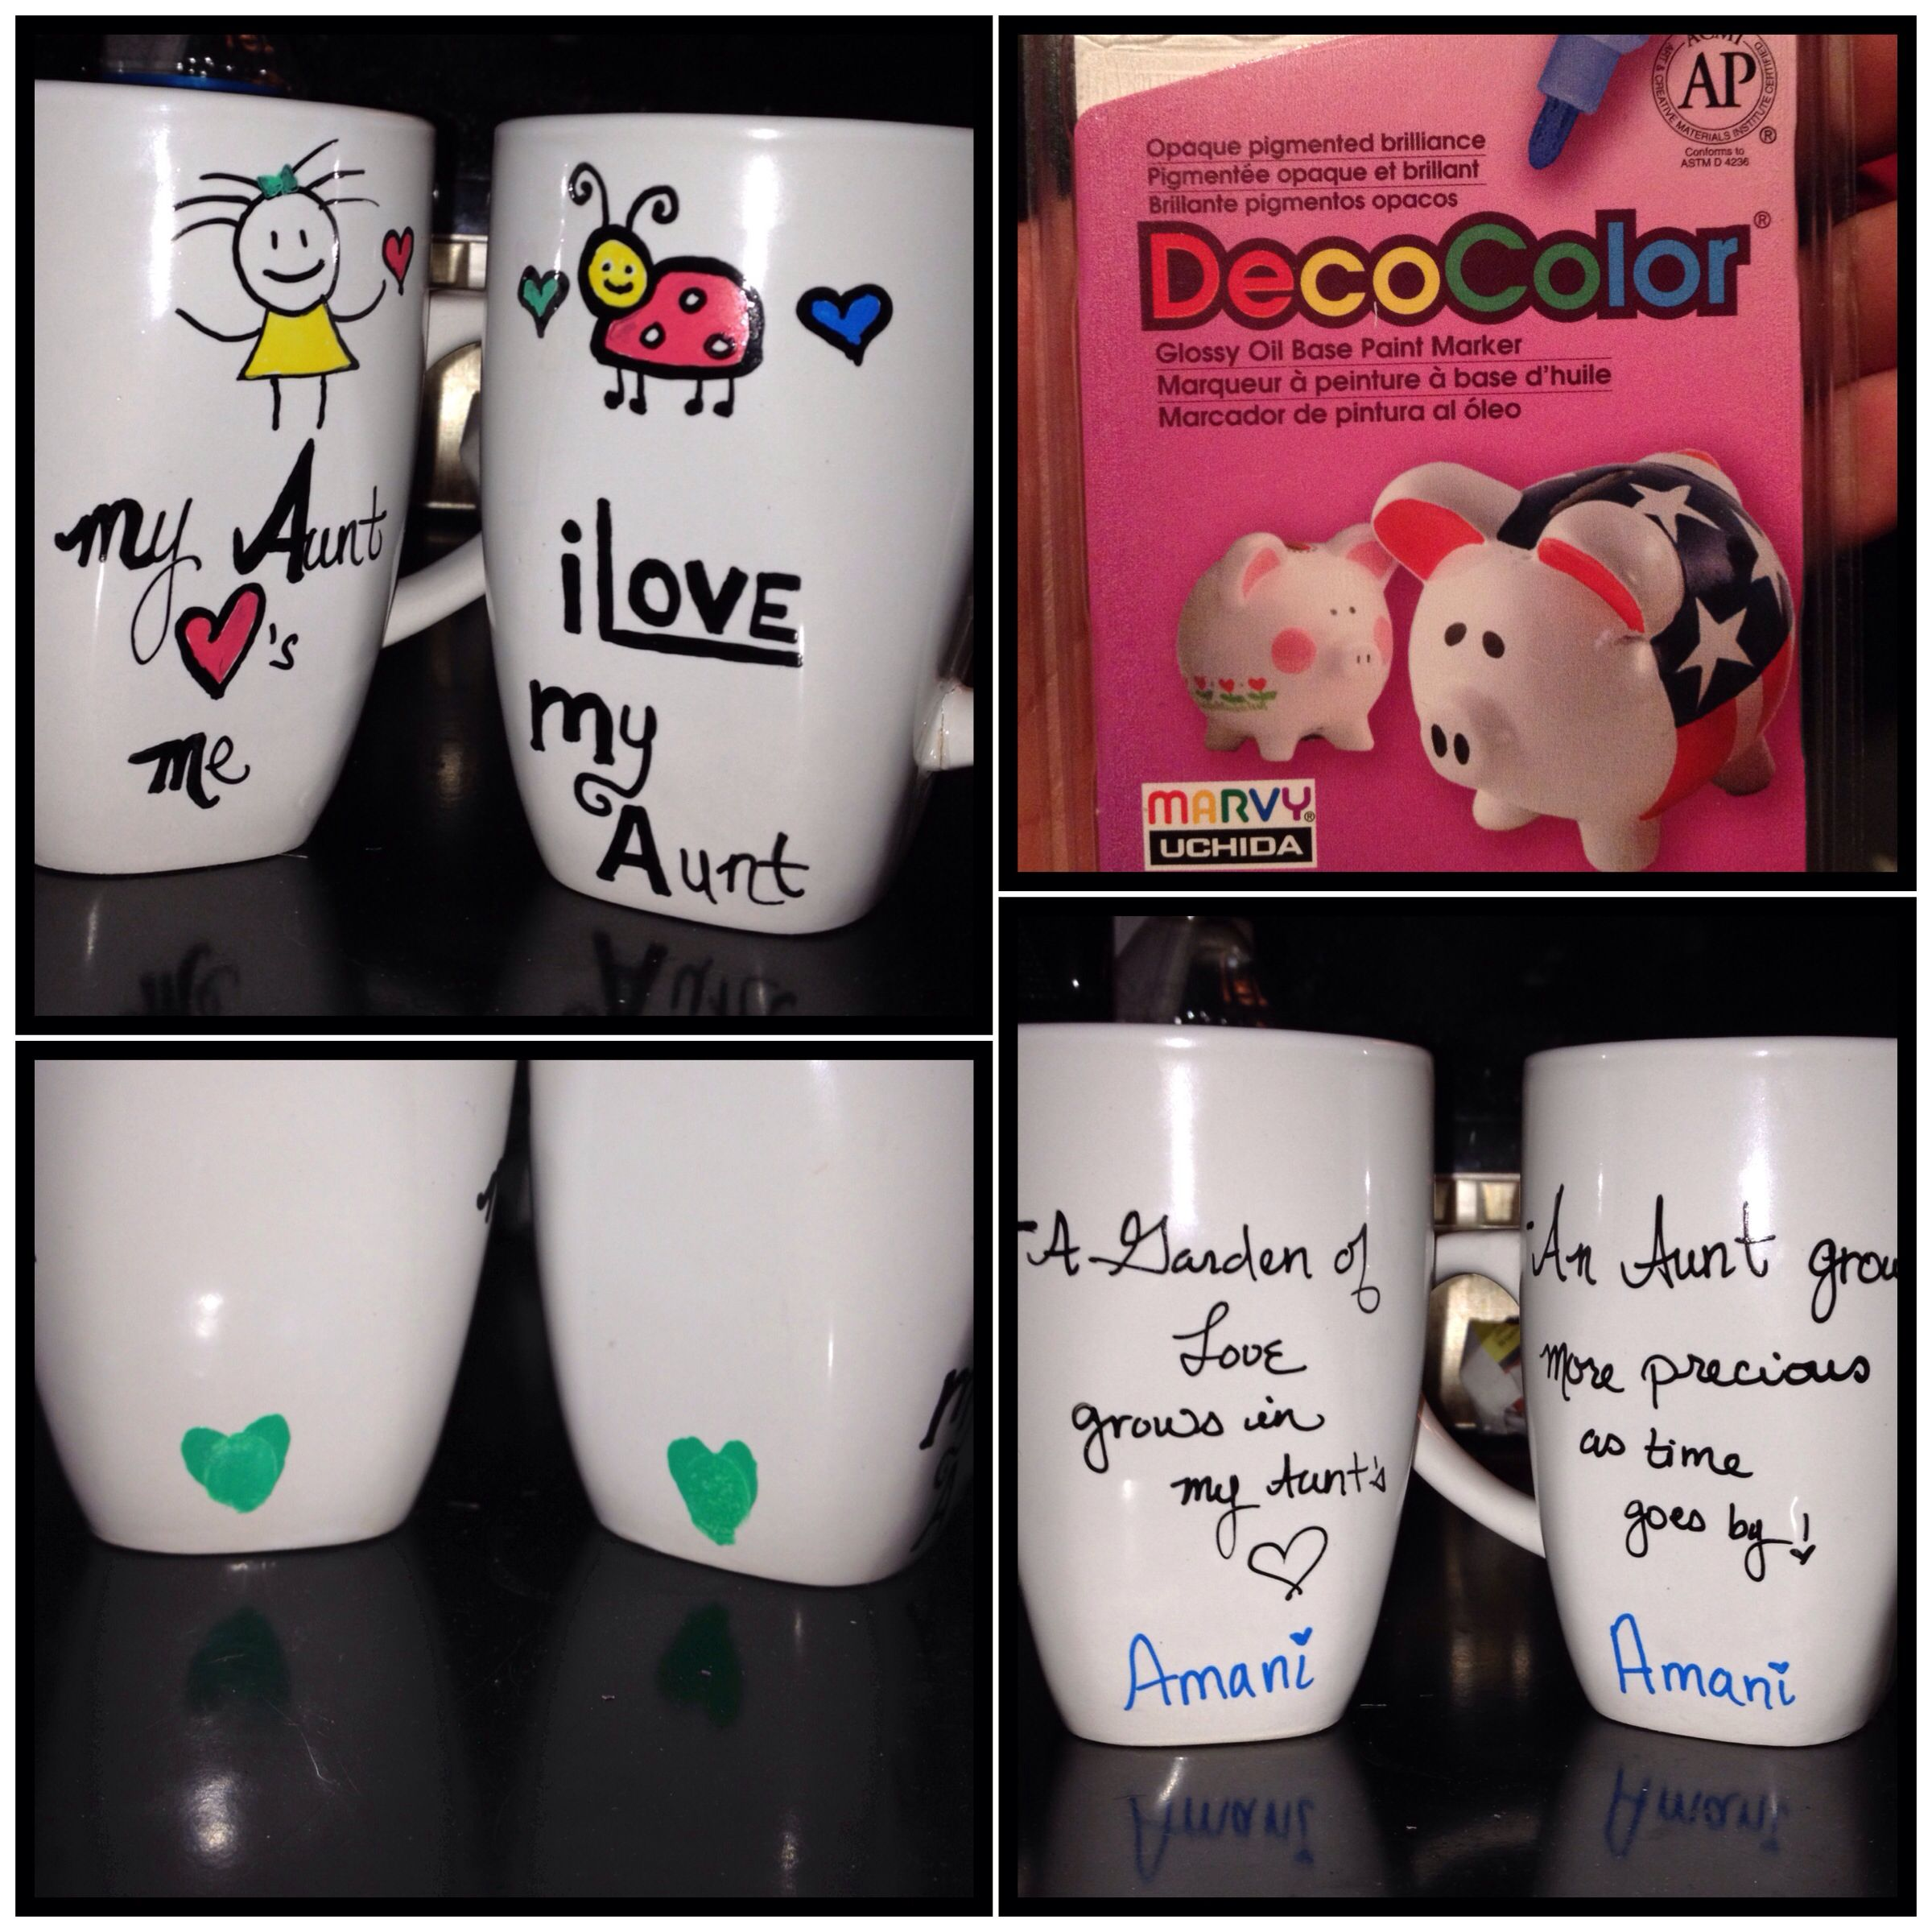 """DIY MUGS"" THINGS YOU'LL NEED  1. A porcelain mug or any choice of dish ware. 2. DecoColor oil based marker or Porcelain 150 pens.  3. Oven    STEPS  1.Draw desired the image with marker  2. Let dry for 1 hour  3. Heat oven to 300 degrees F. Bake for 30 minutes, then let them cool. Once cooled, the design should be permanently fixed to your desired dish ware.    This is a very easy project! A great DIY gift for any occasion! Hope you enjoy making them. -SOBI"